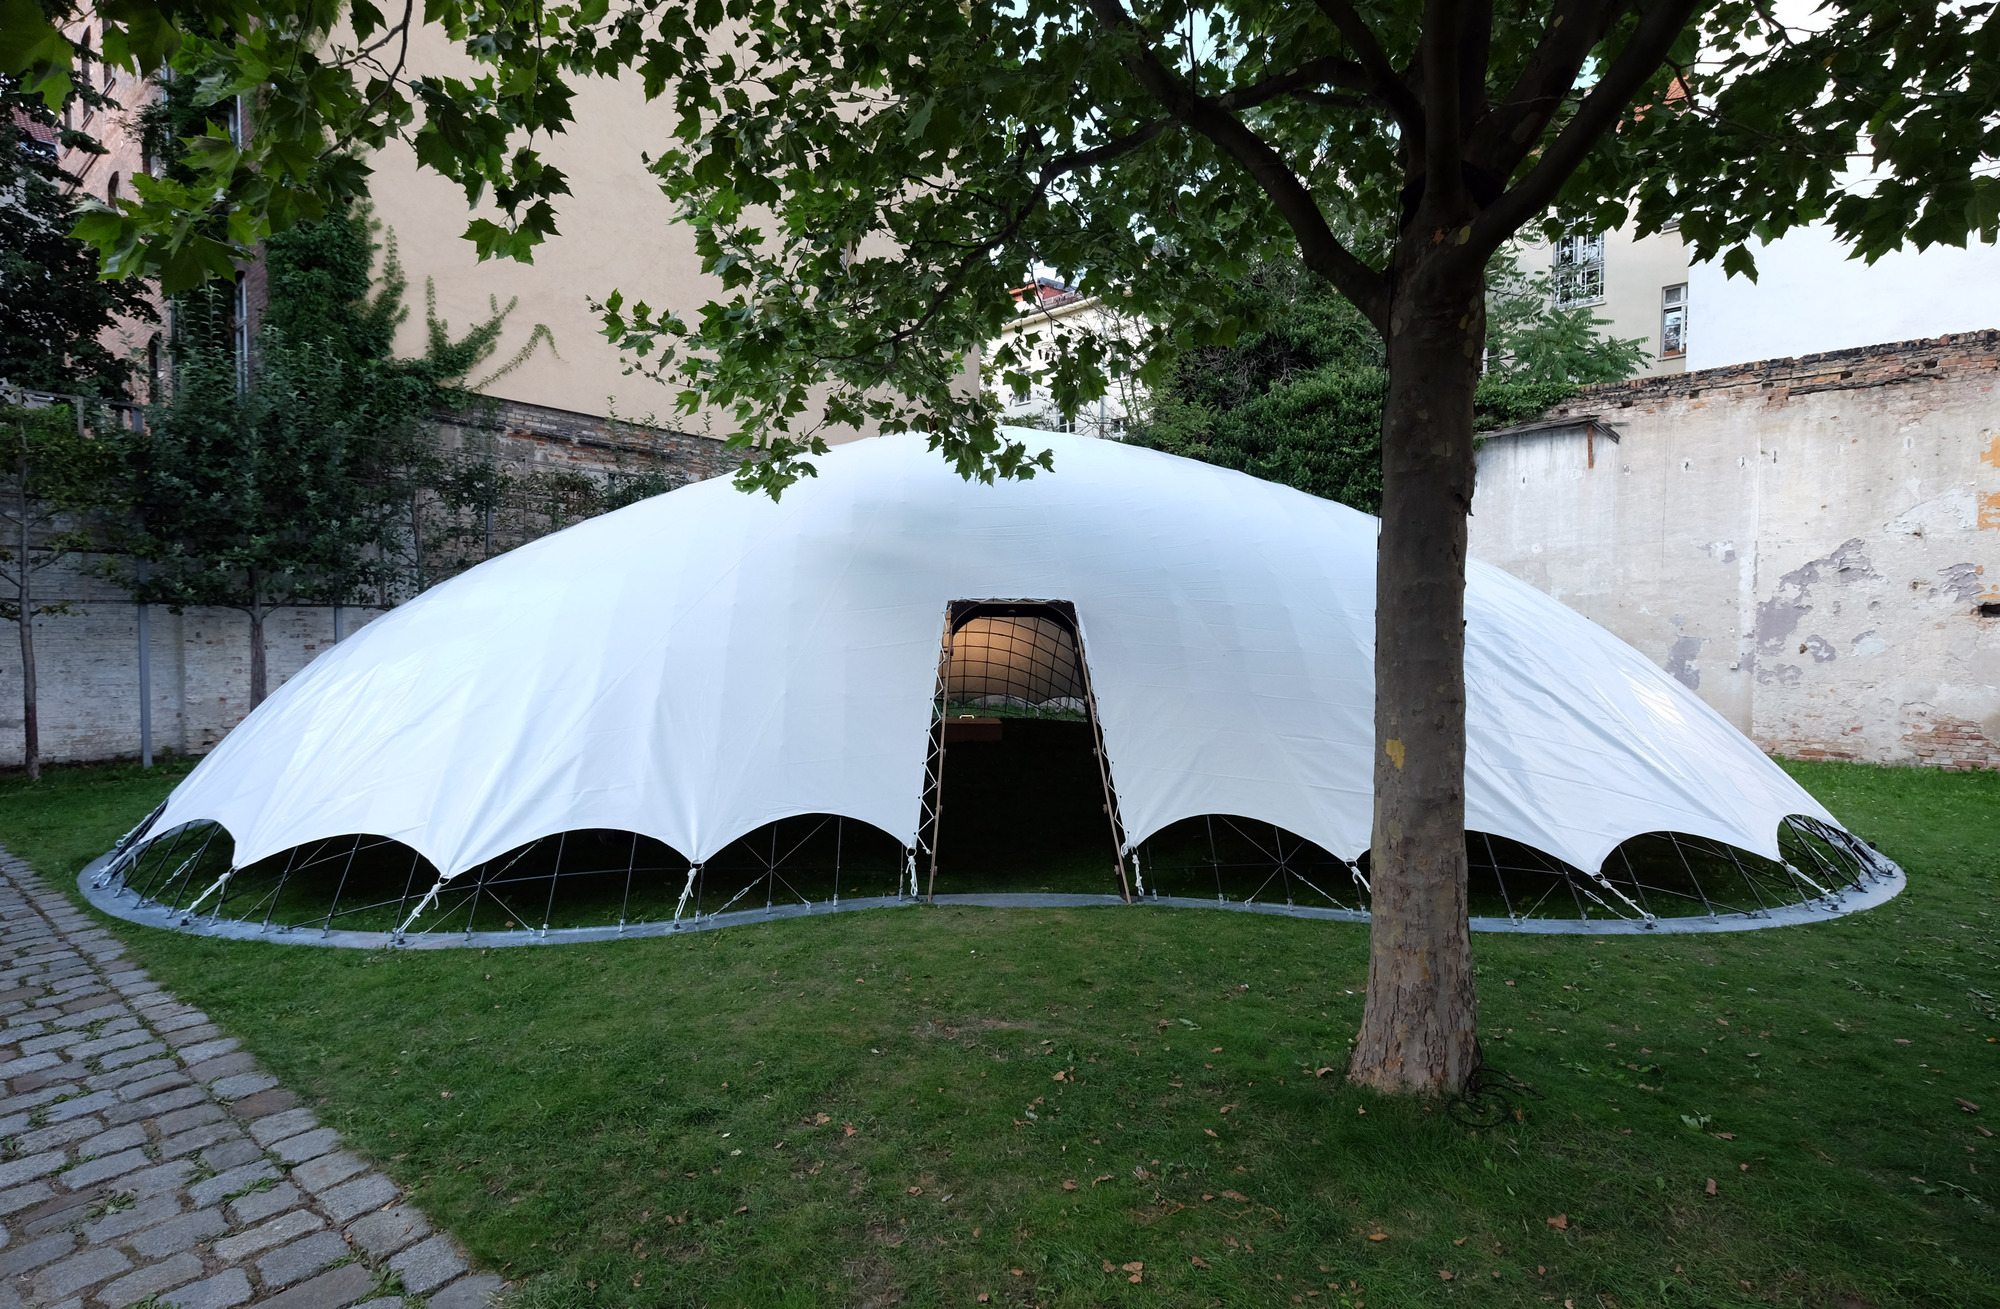 Inexpensive, Easy-to-Build Gridshell Pavilion Uses Air-Filled Cushions for Construction